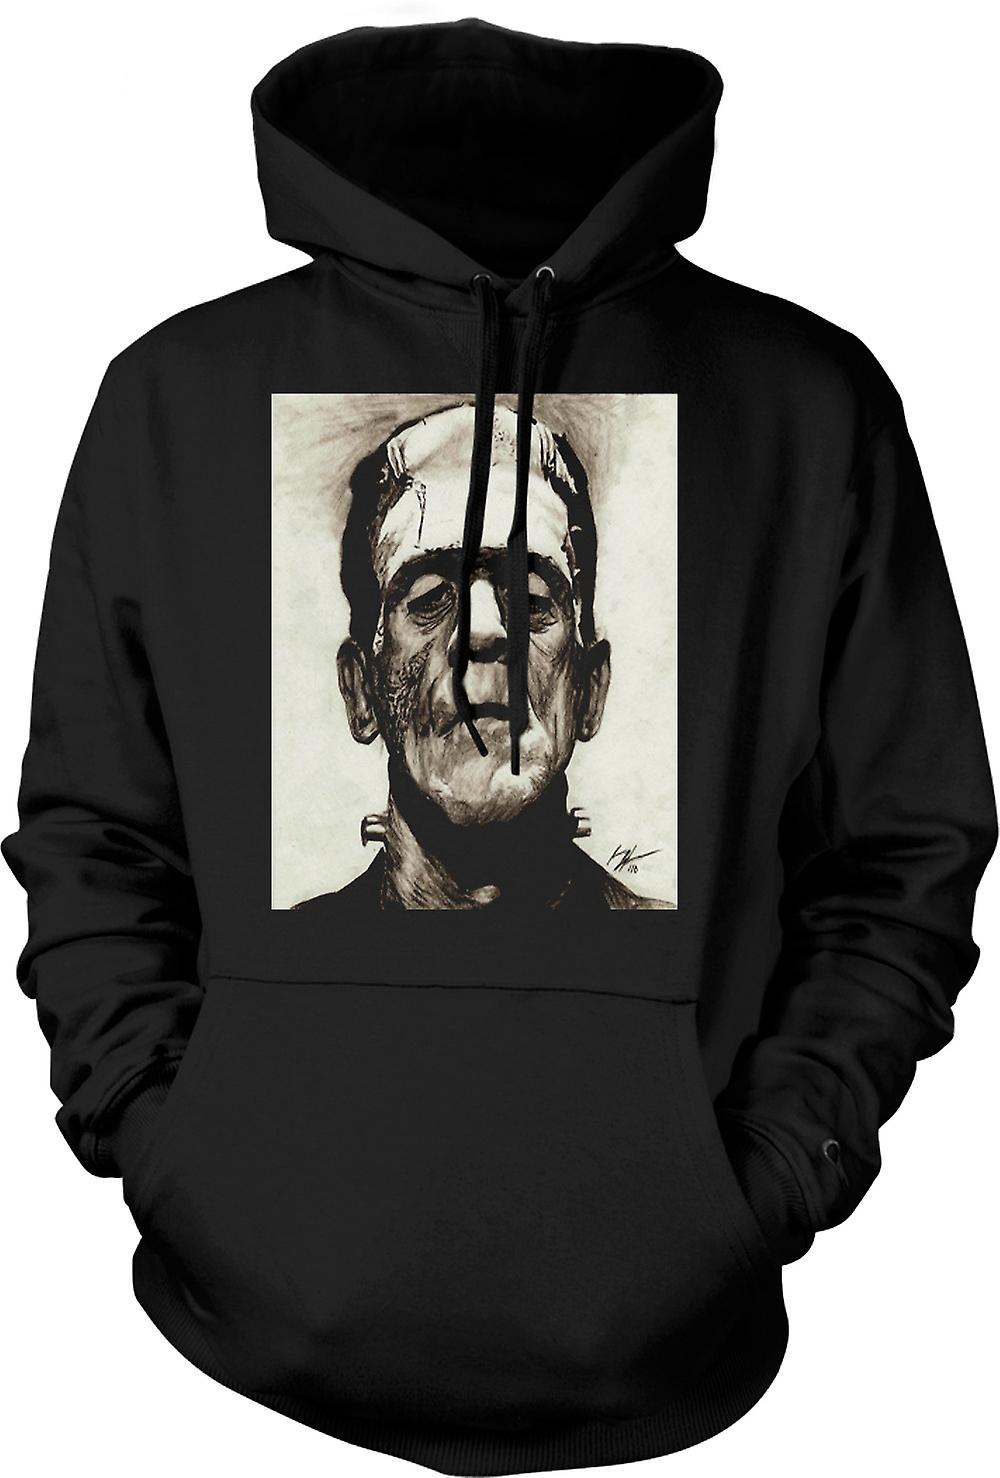 Mens-Hoodie - Frankenstein-Sketch - Horror